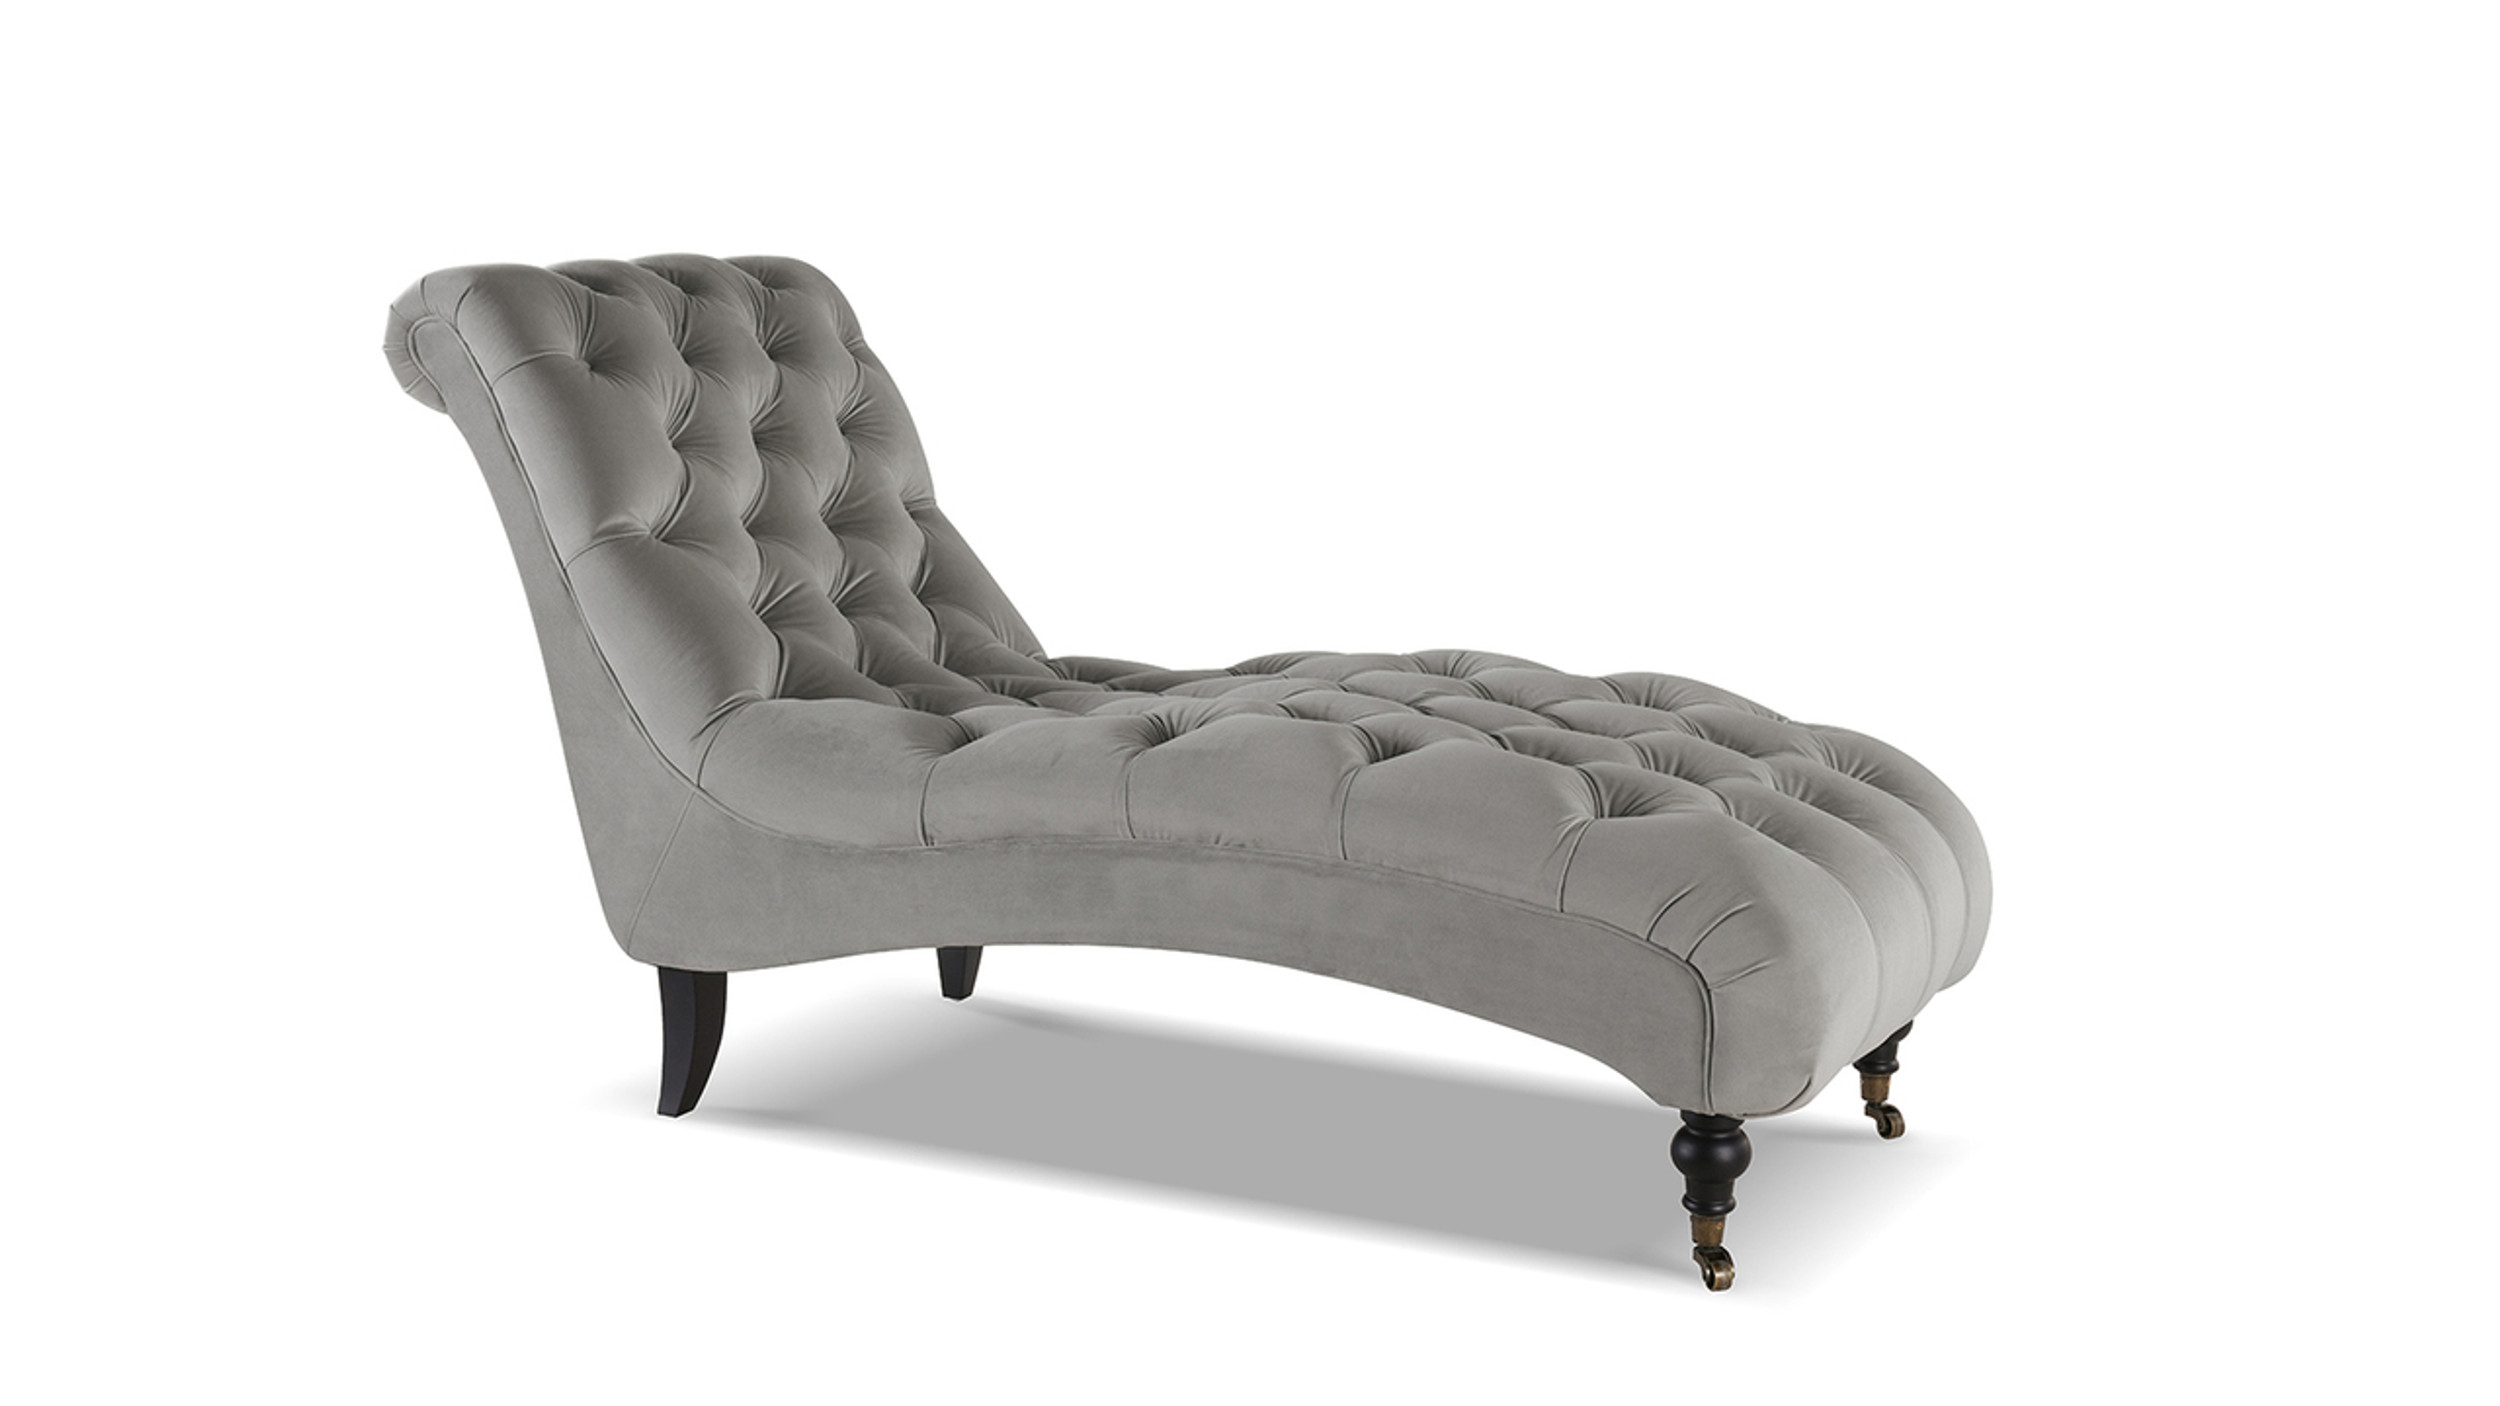 angelica tufted chaise lounge opal grey